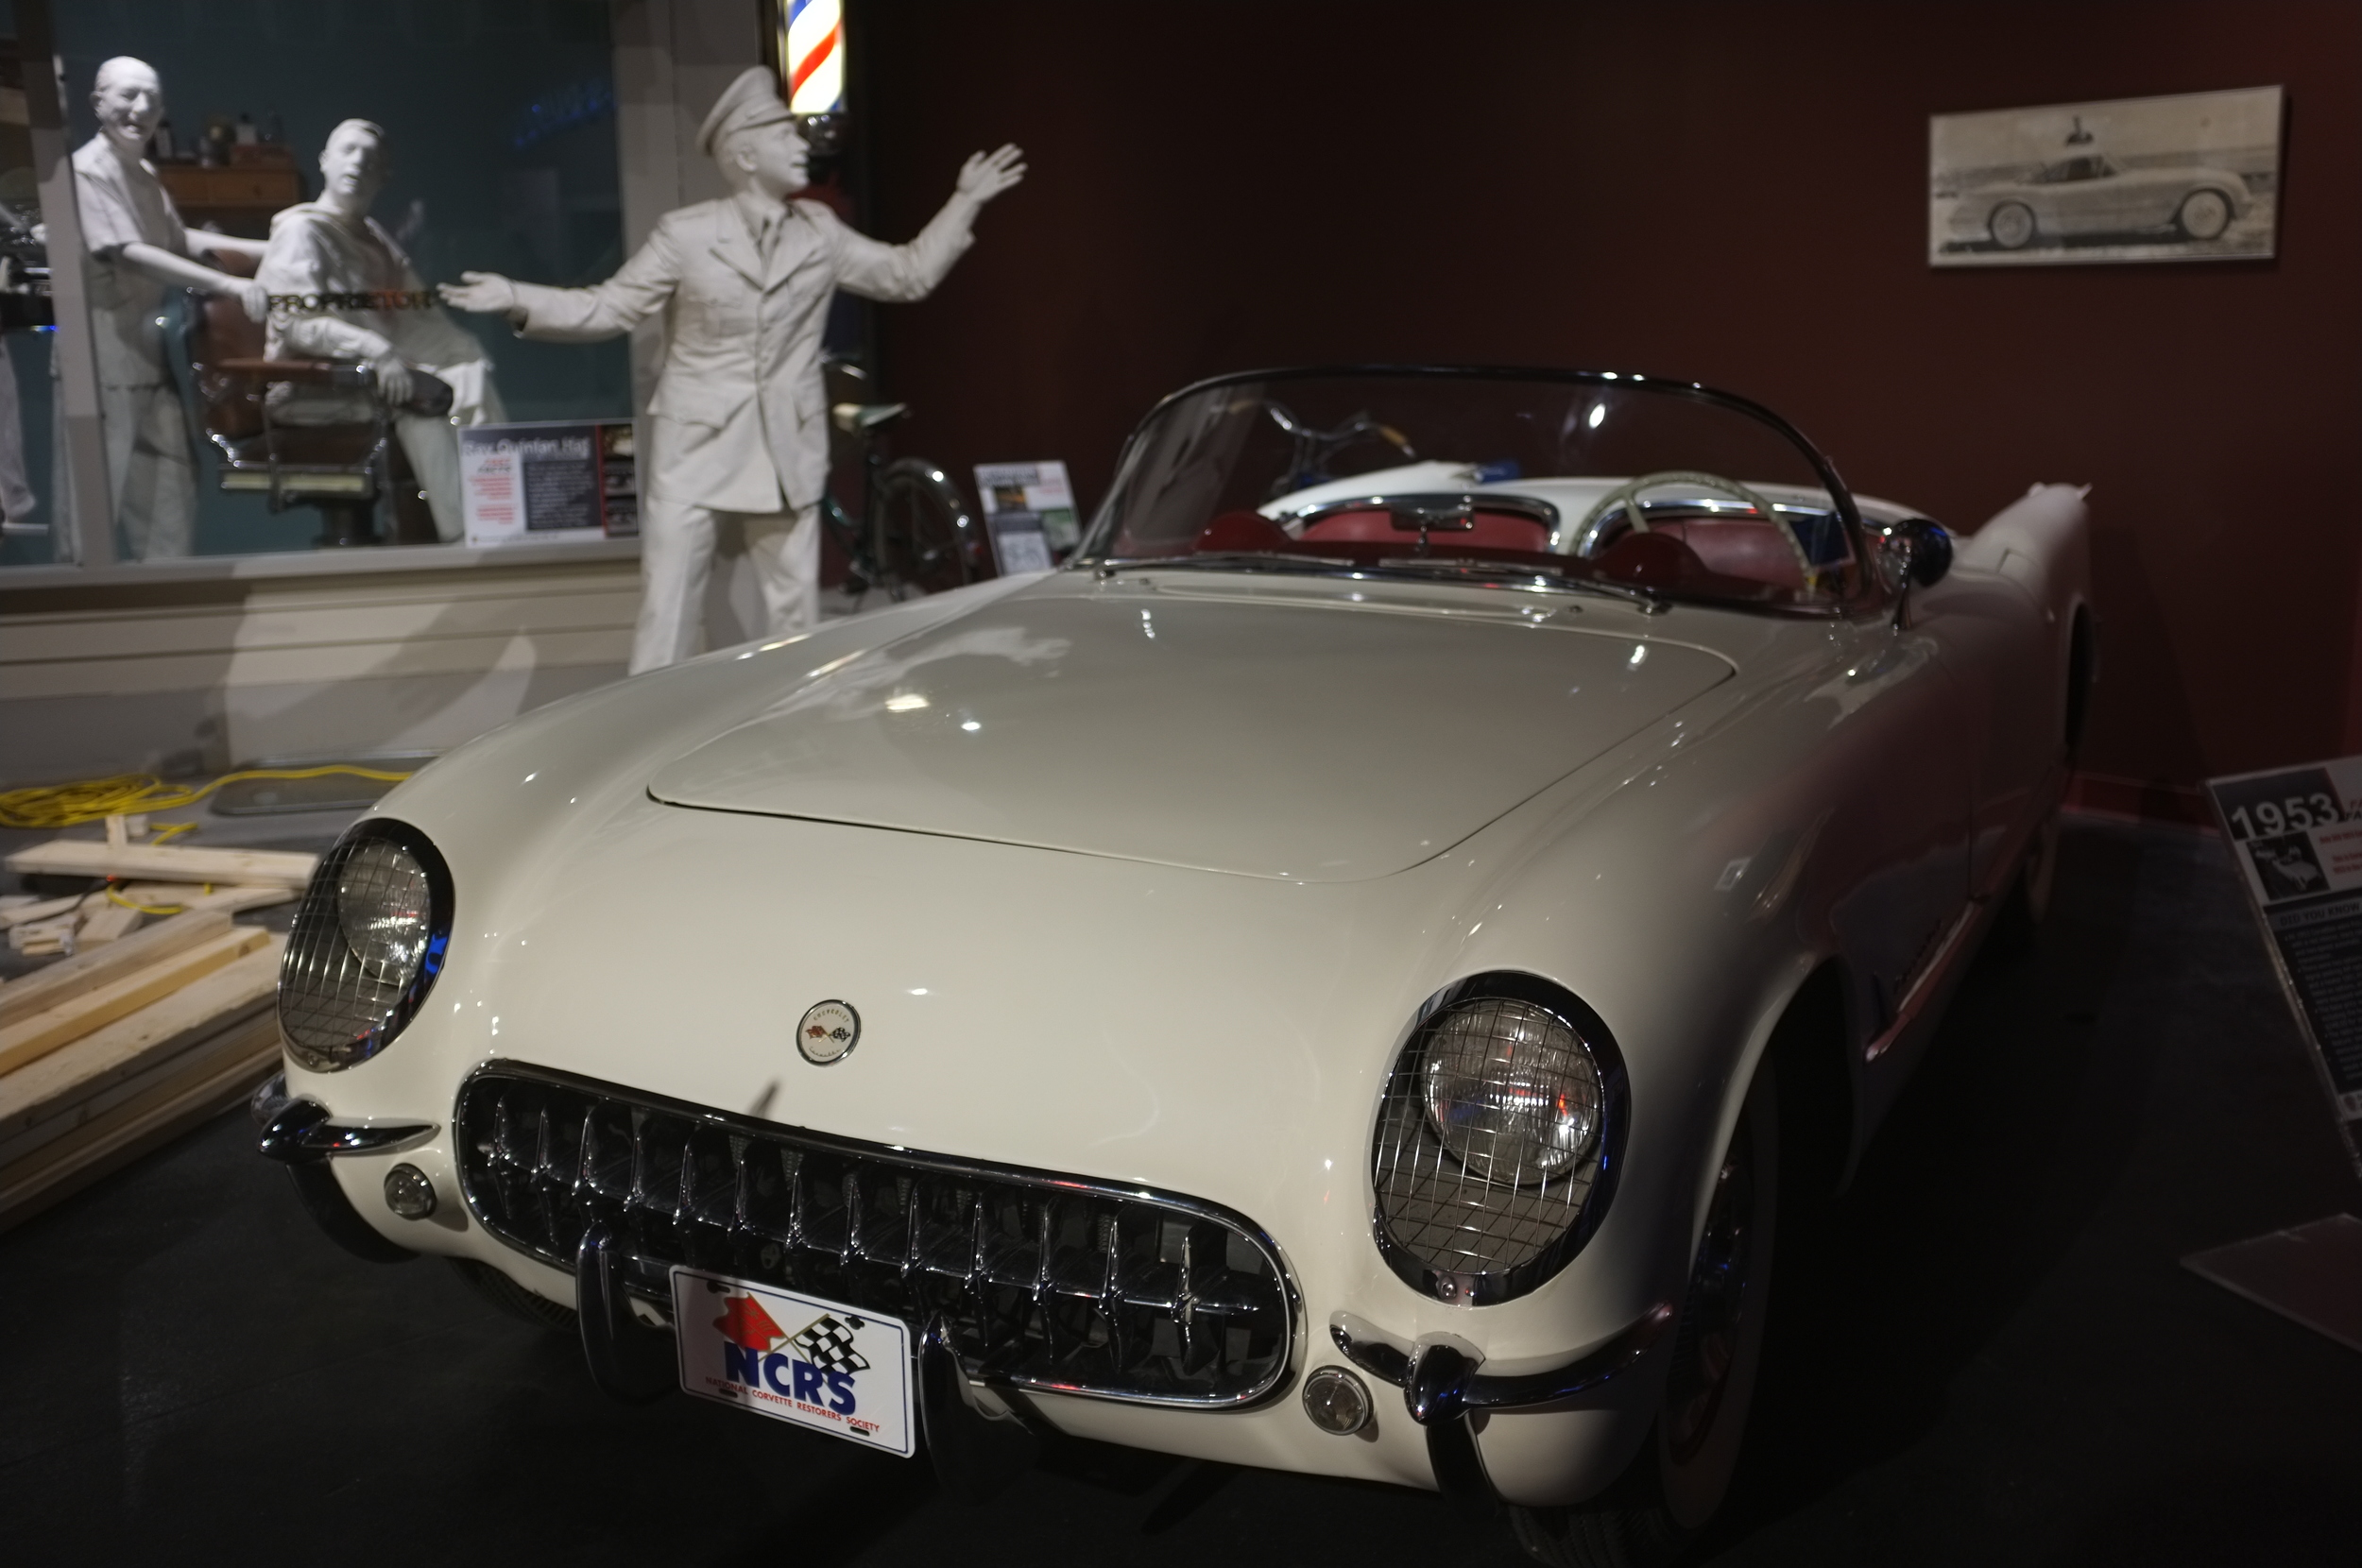 America's first sports car: one of the 300 original handbuilt Corvettes produced in 1953.